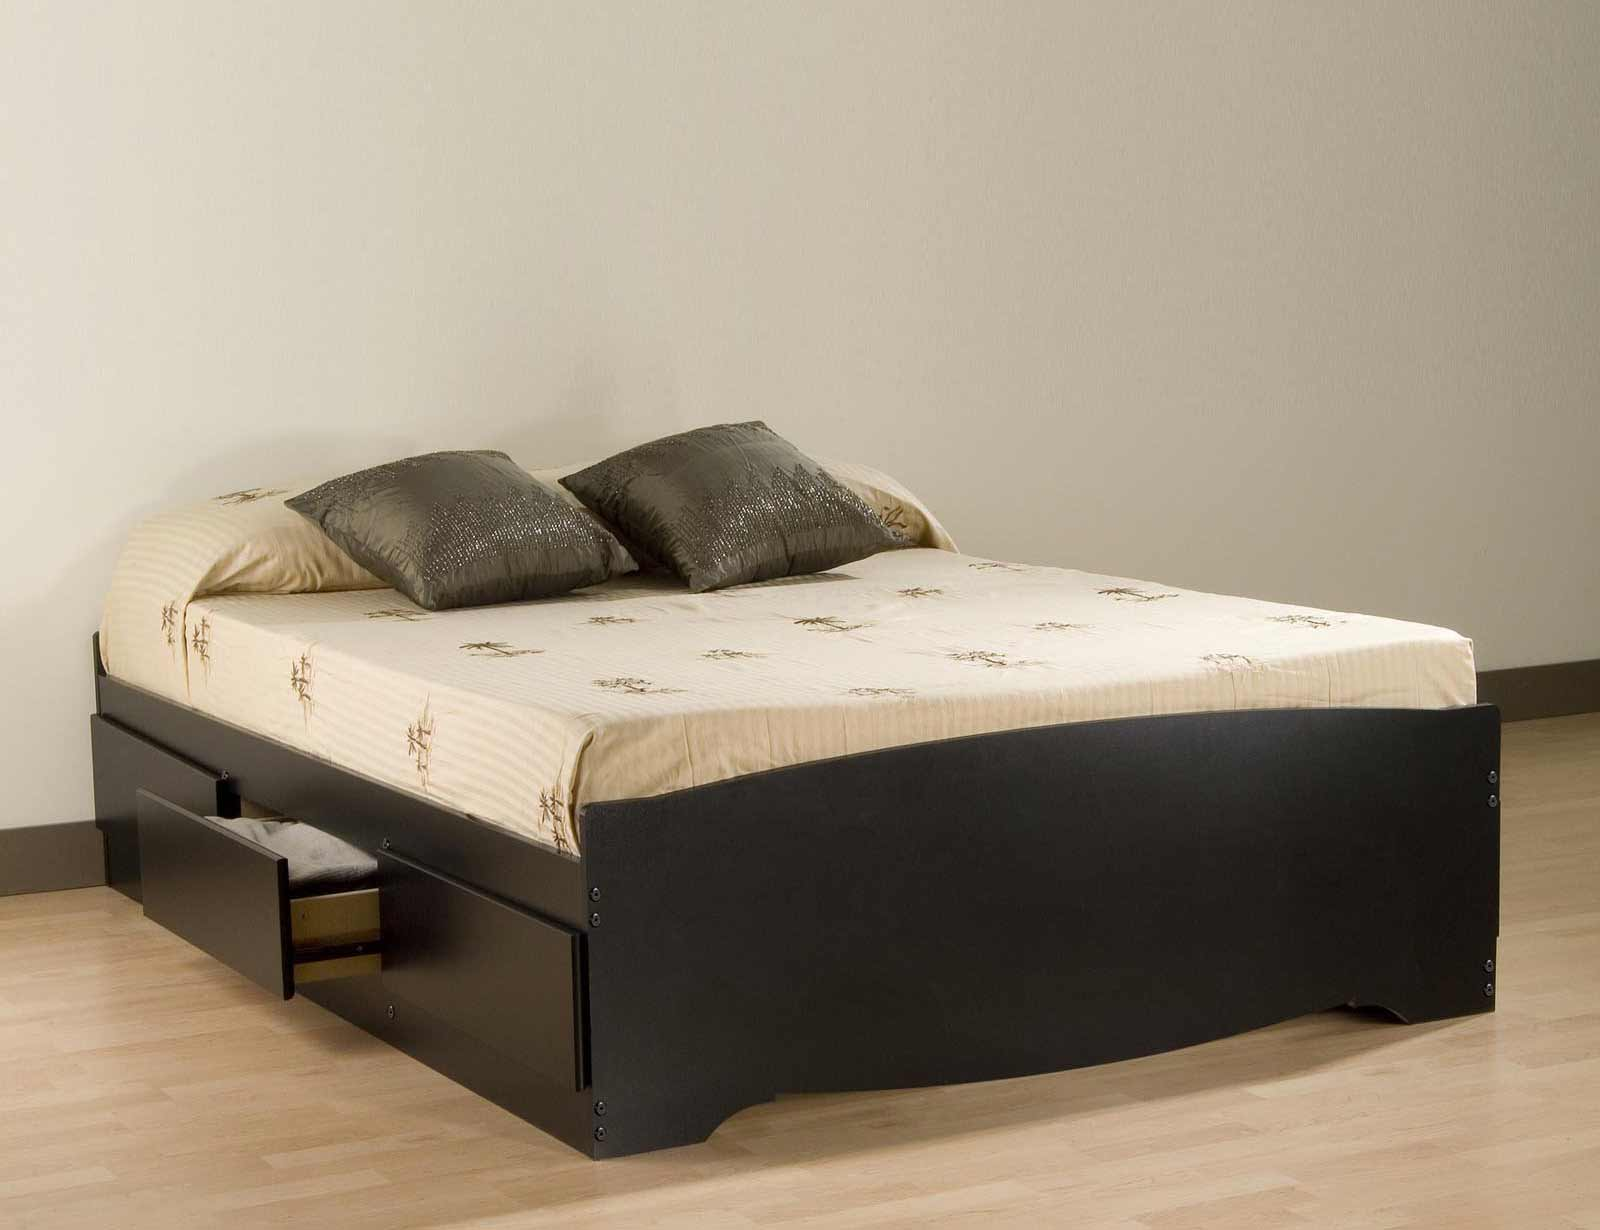 Beds With Storage Underneath To Maximize Room